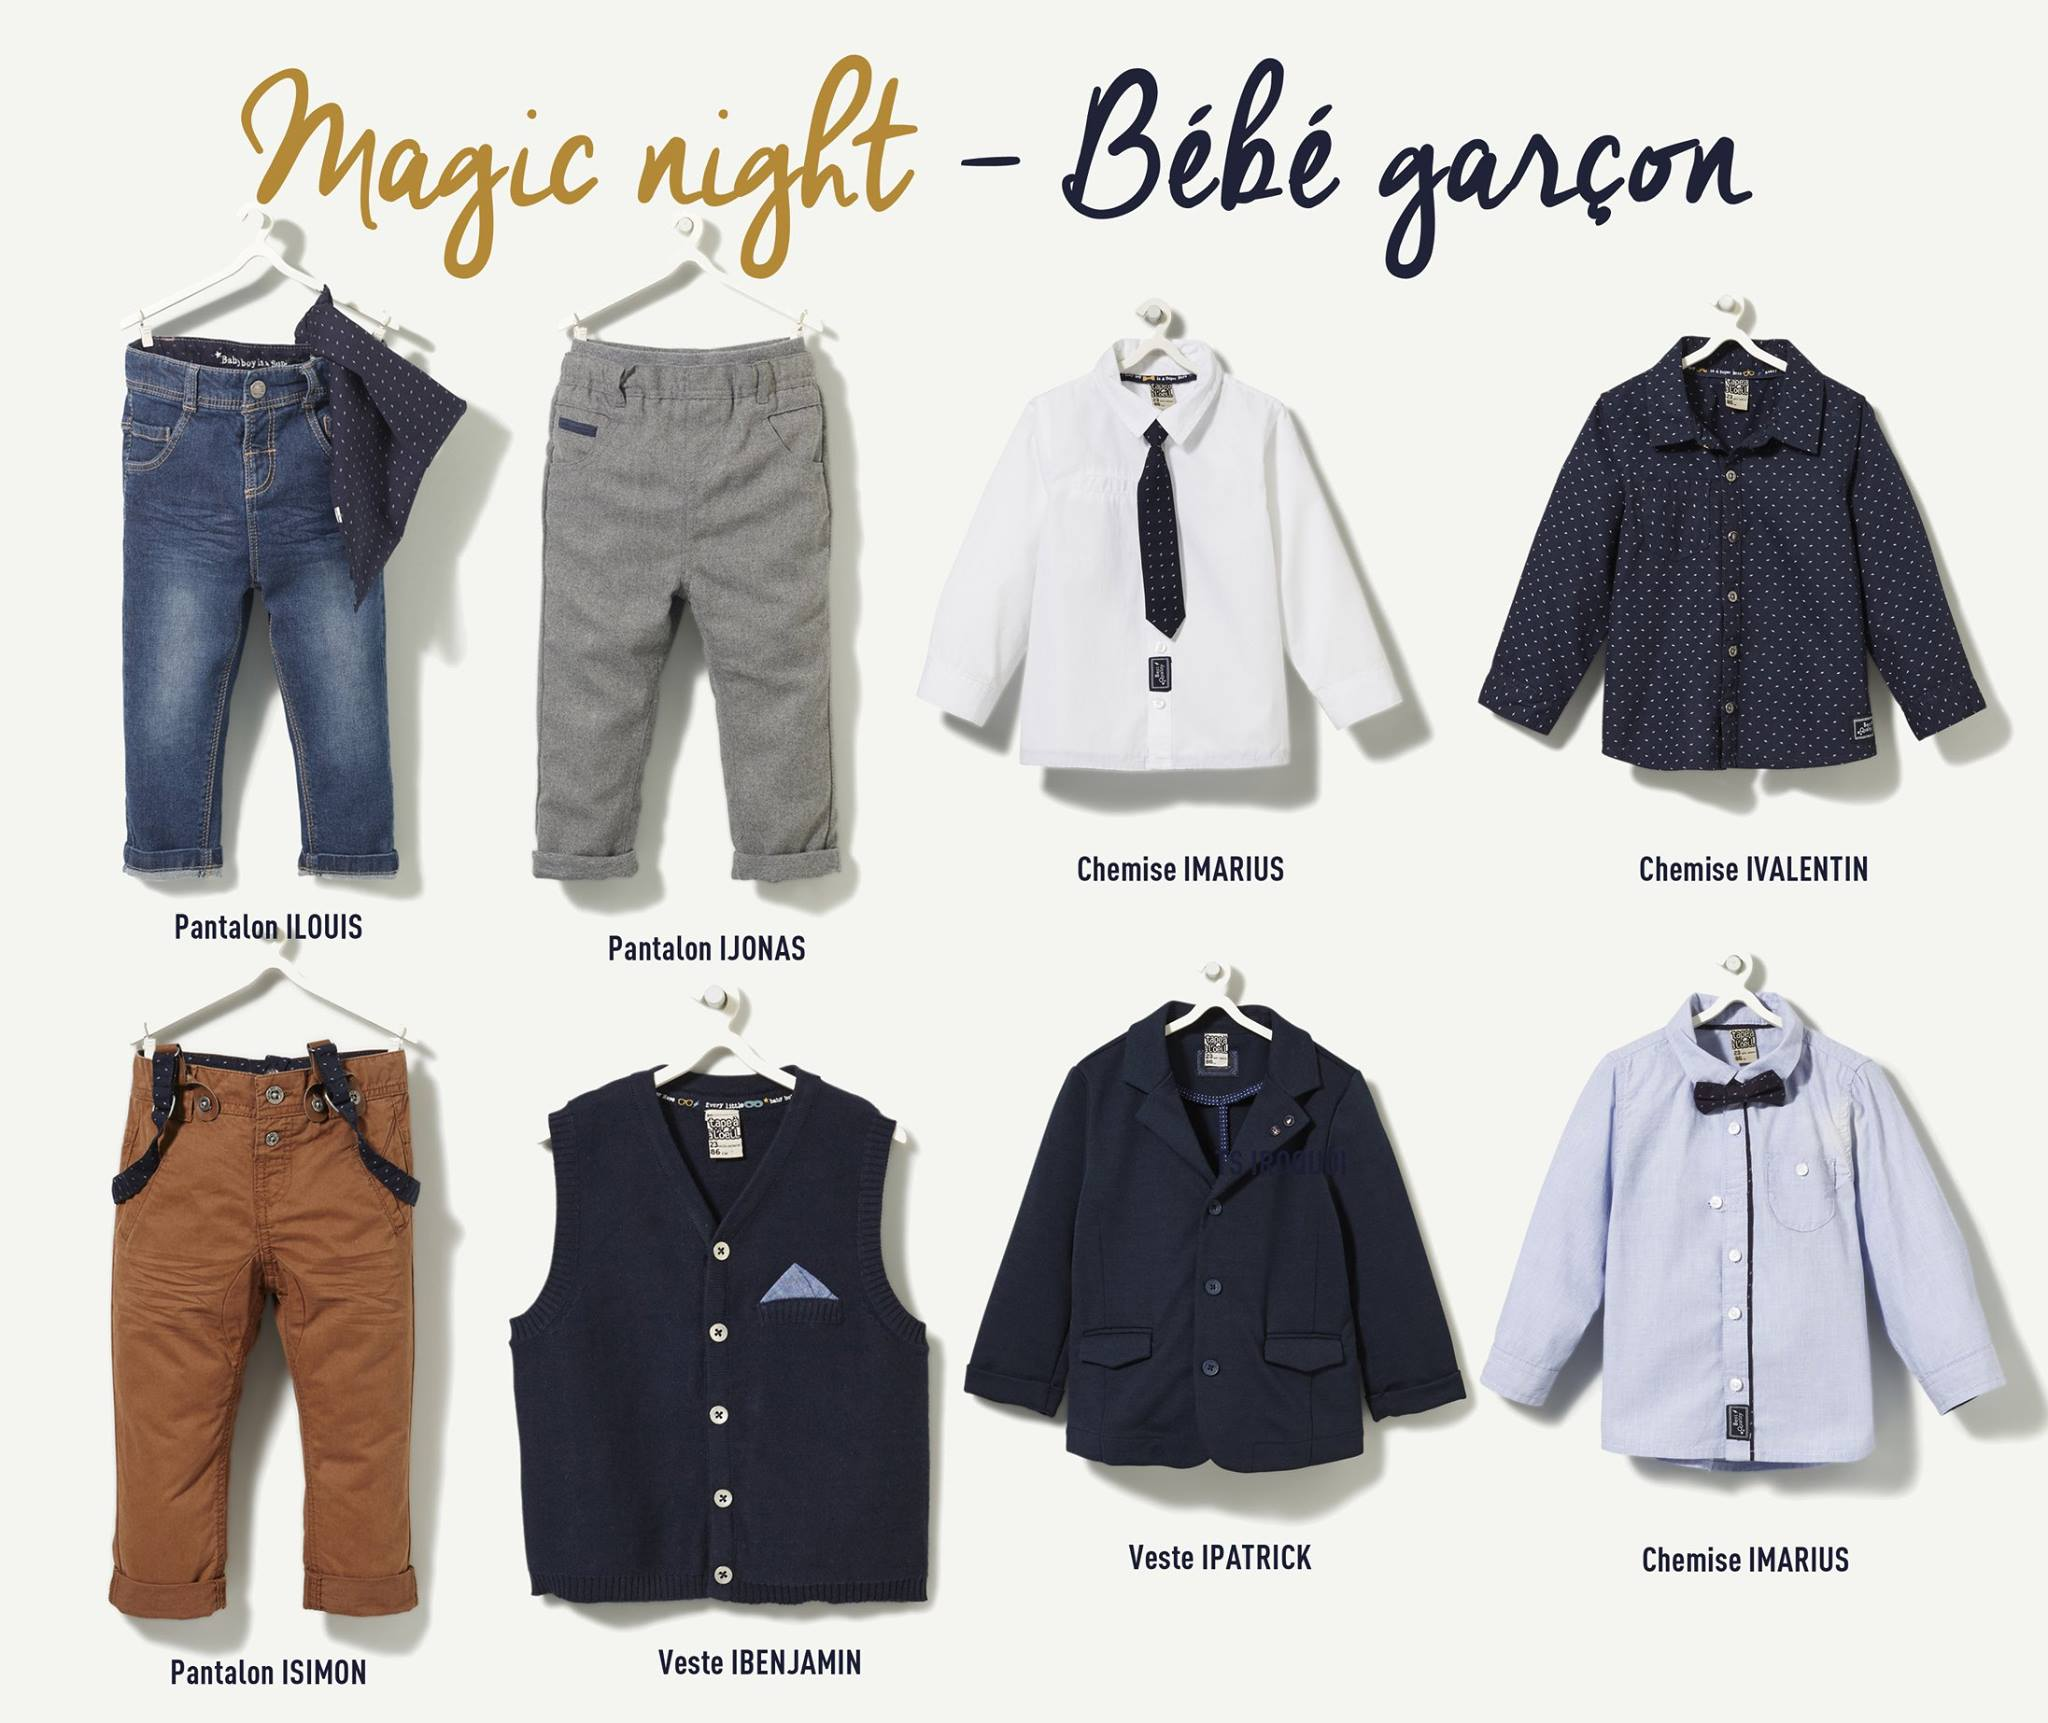 aa4d3fa057d93 Tenue Noël Magic Night Bébé Garçon Tape à l Oeil - Le Journal d une ...